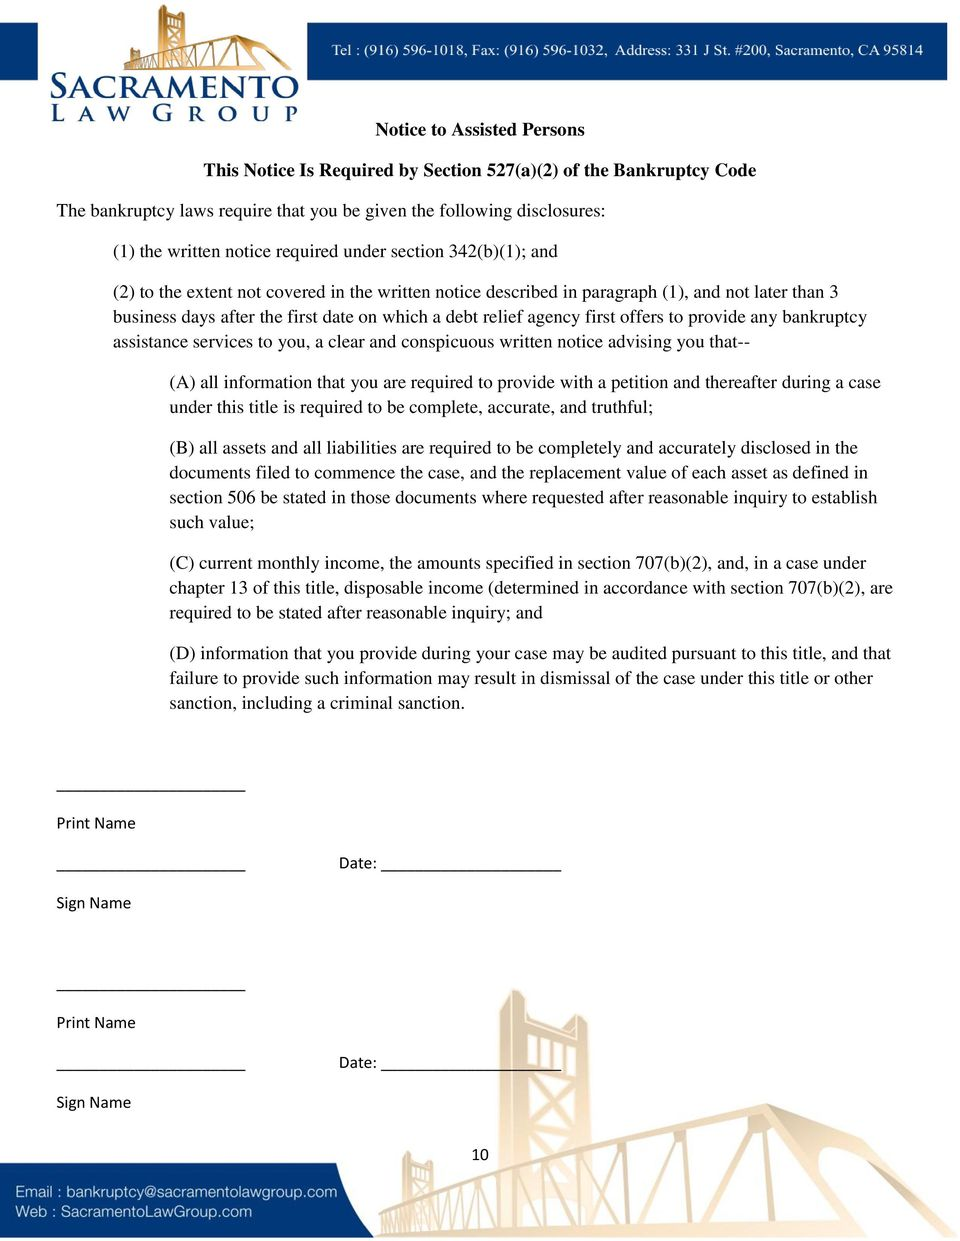 first offers to provide any bankruptcy assistance services to you, a clear and conspicuous written notice advising you that-- (A) all information that you are required to provide with a petition and